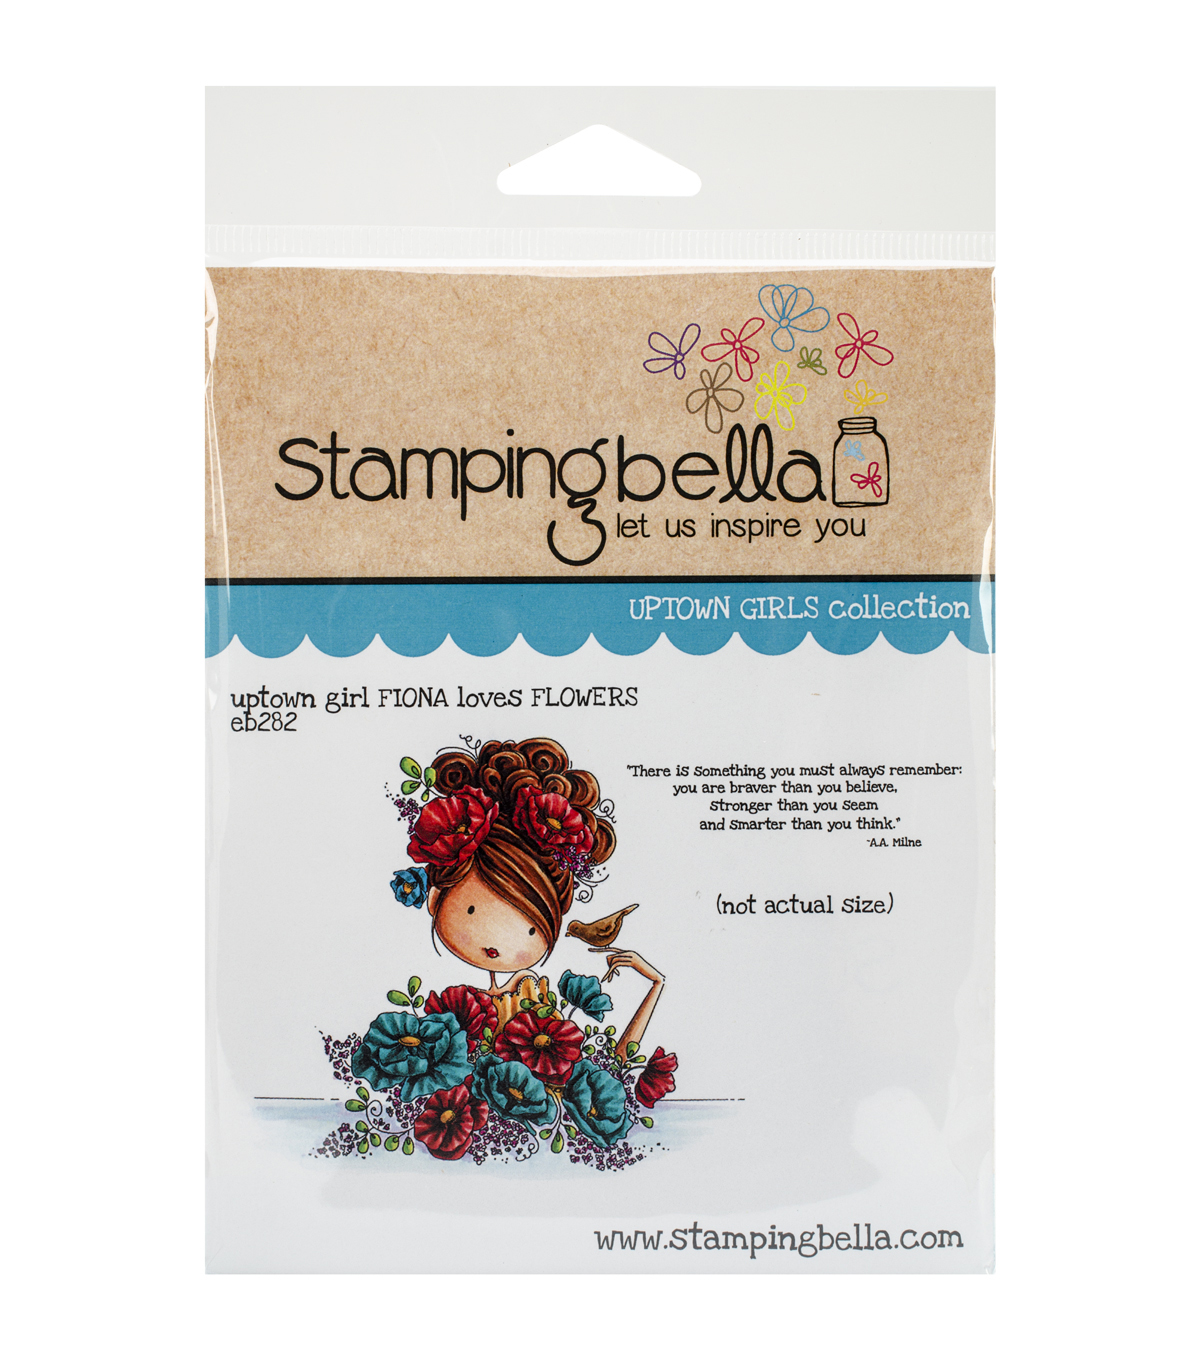 Stamping Bella Uptown Girl Fiona Loves Flowers Cling Rubber Stamp